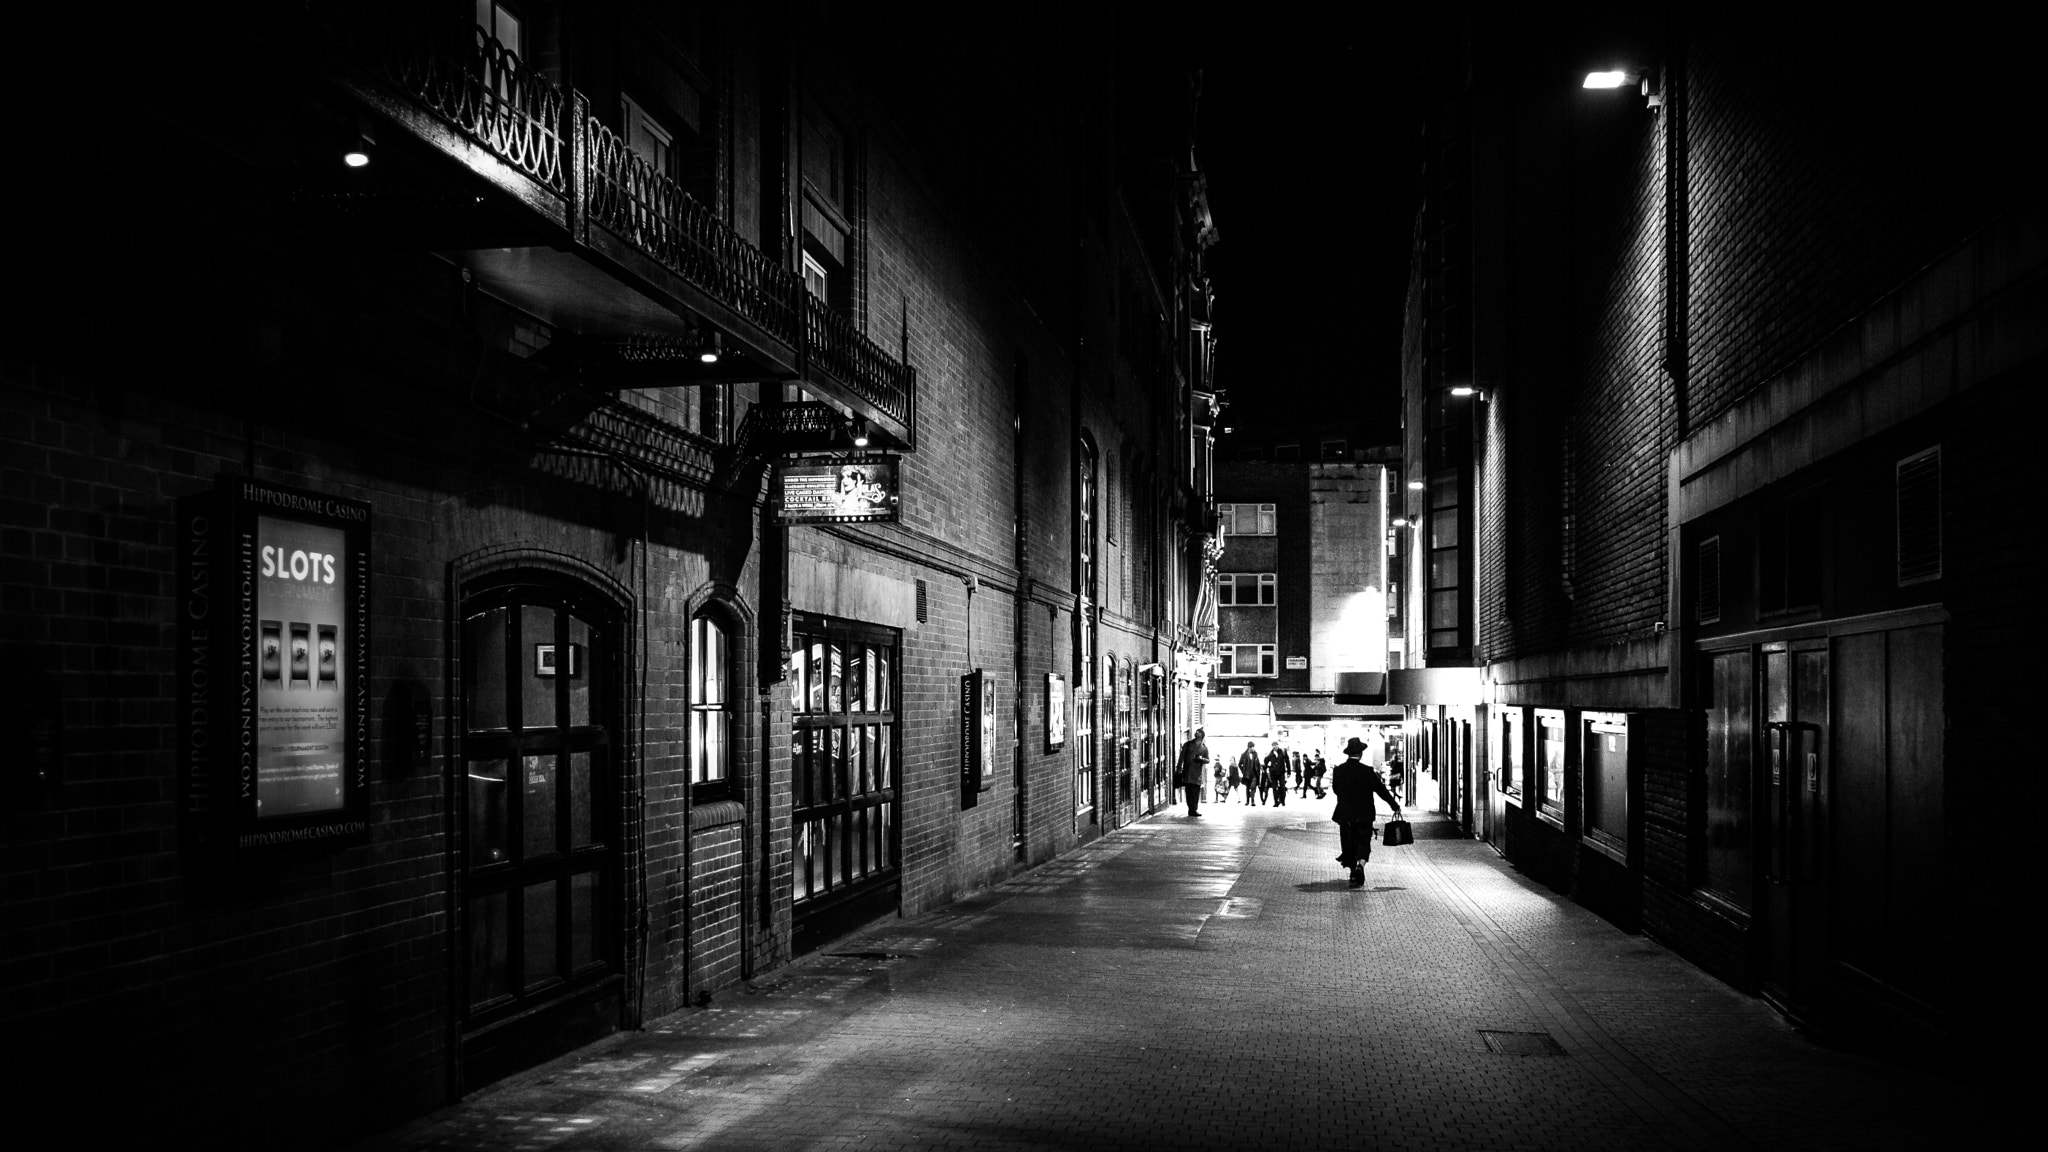 Filea man walking at night london england black and white street photography 182917619